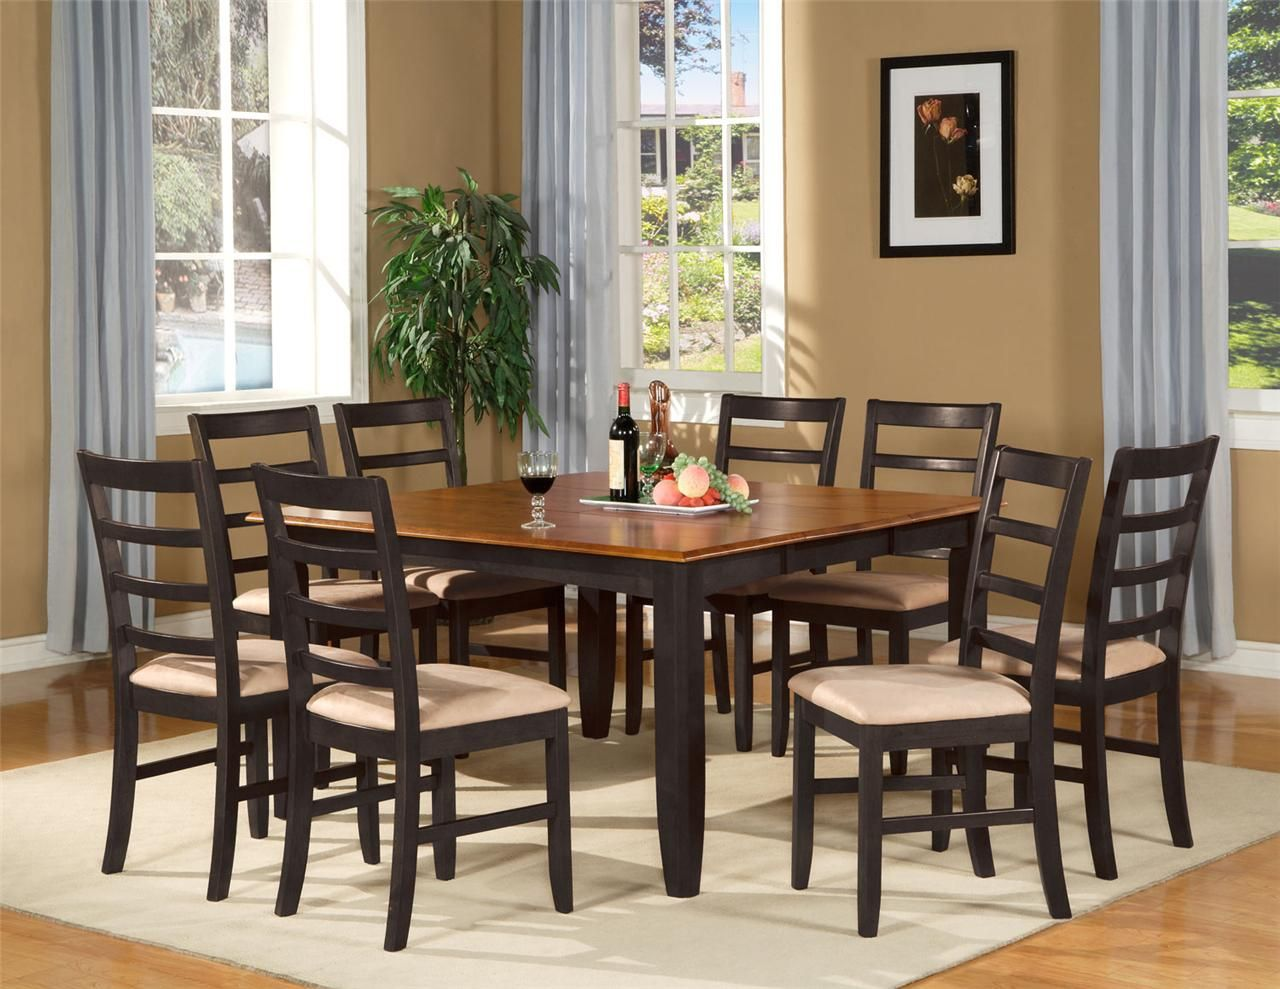 8 Chair Dining Set 9 Pc Square Dinette Dining Room Table Set And 8 Chairs Dining